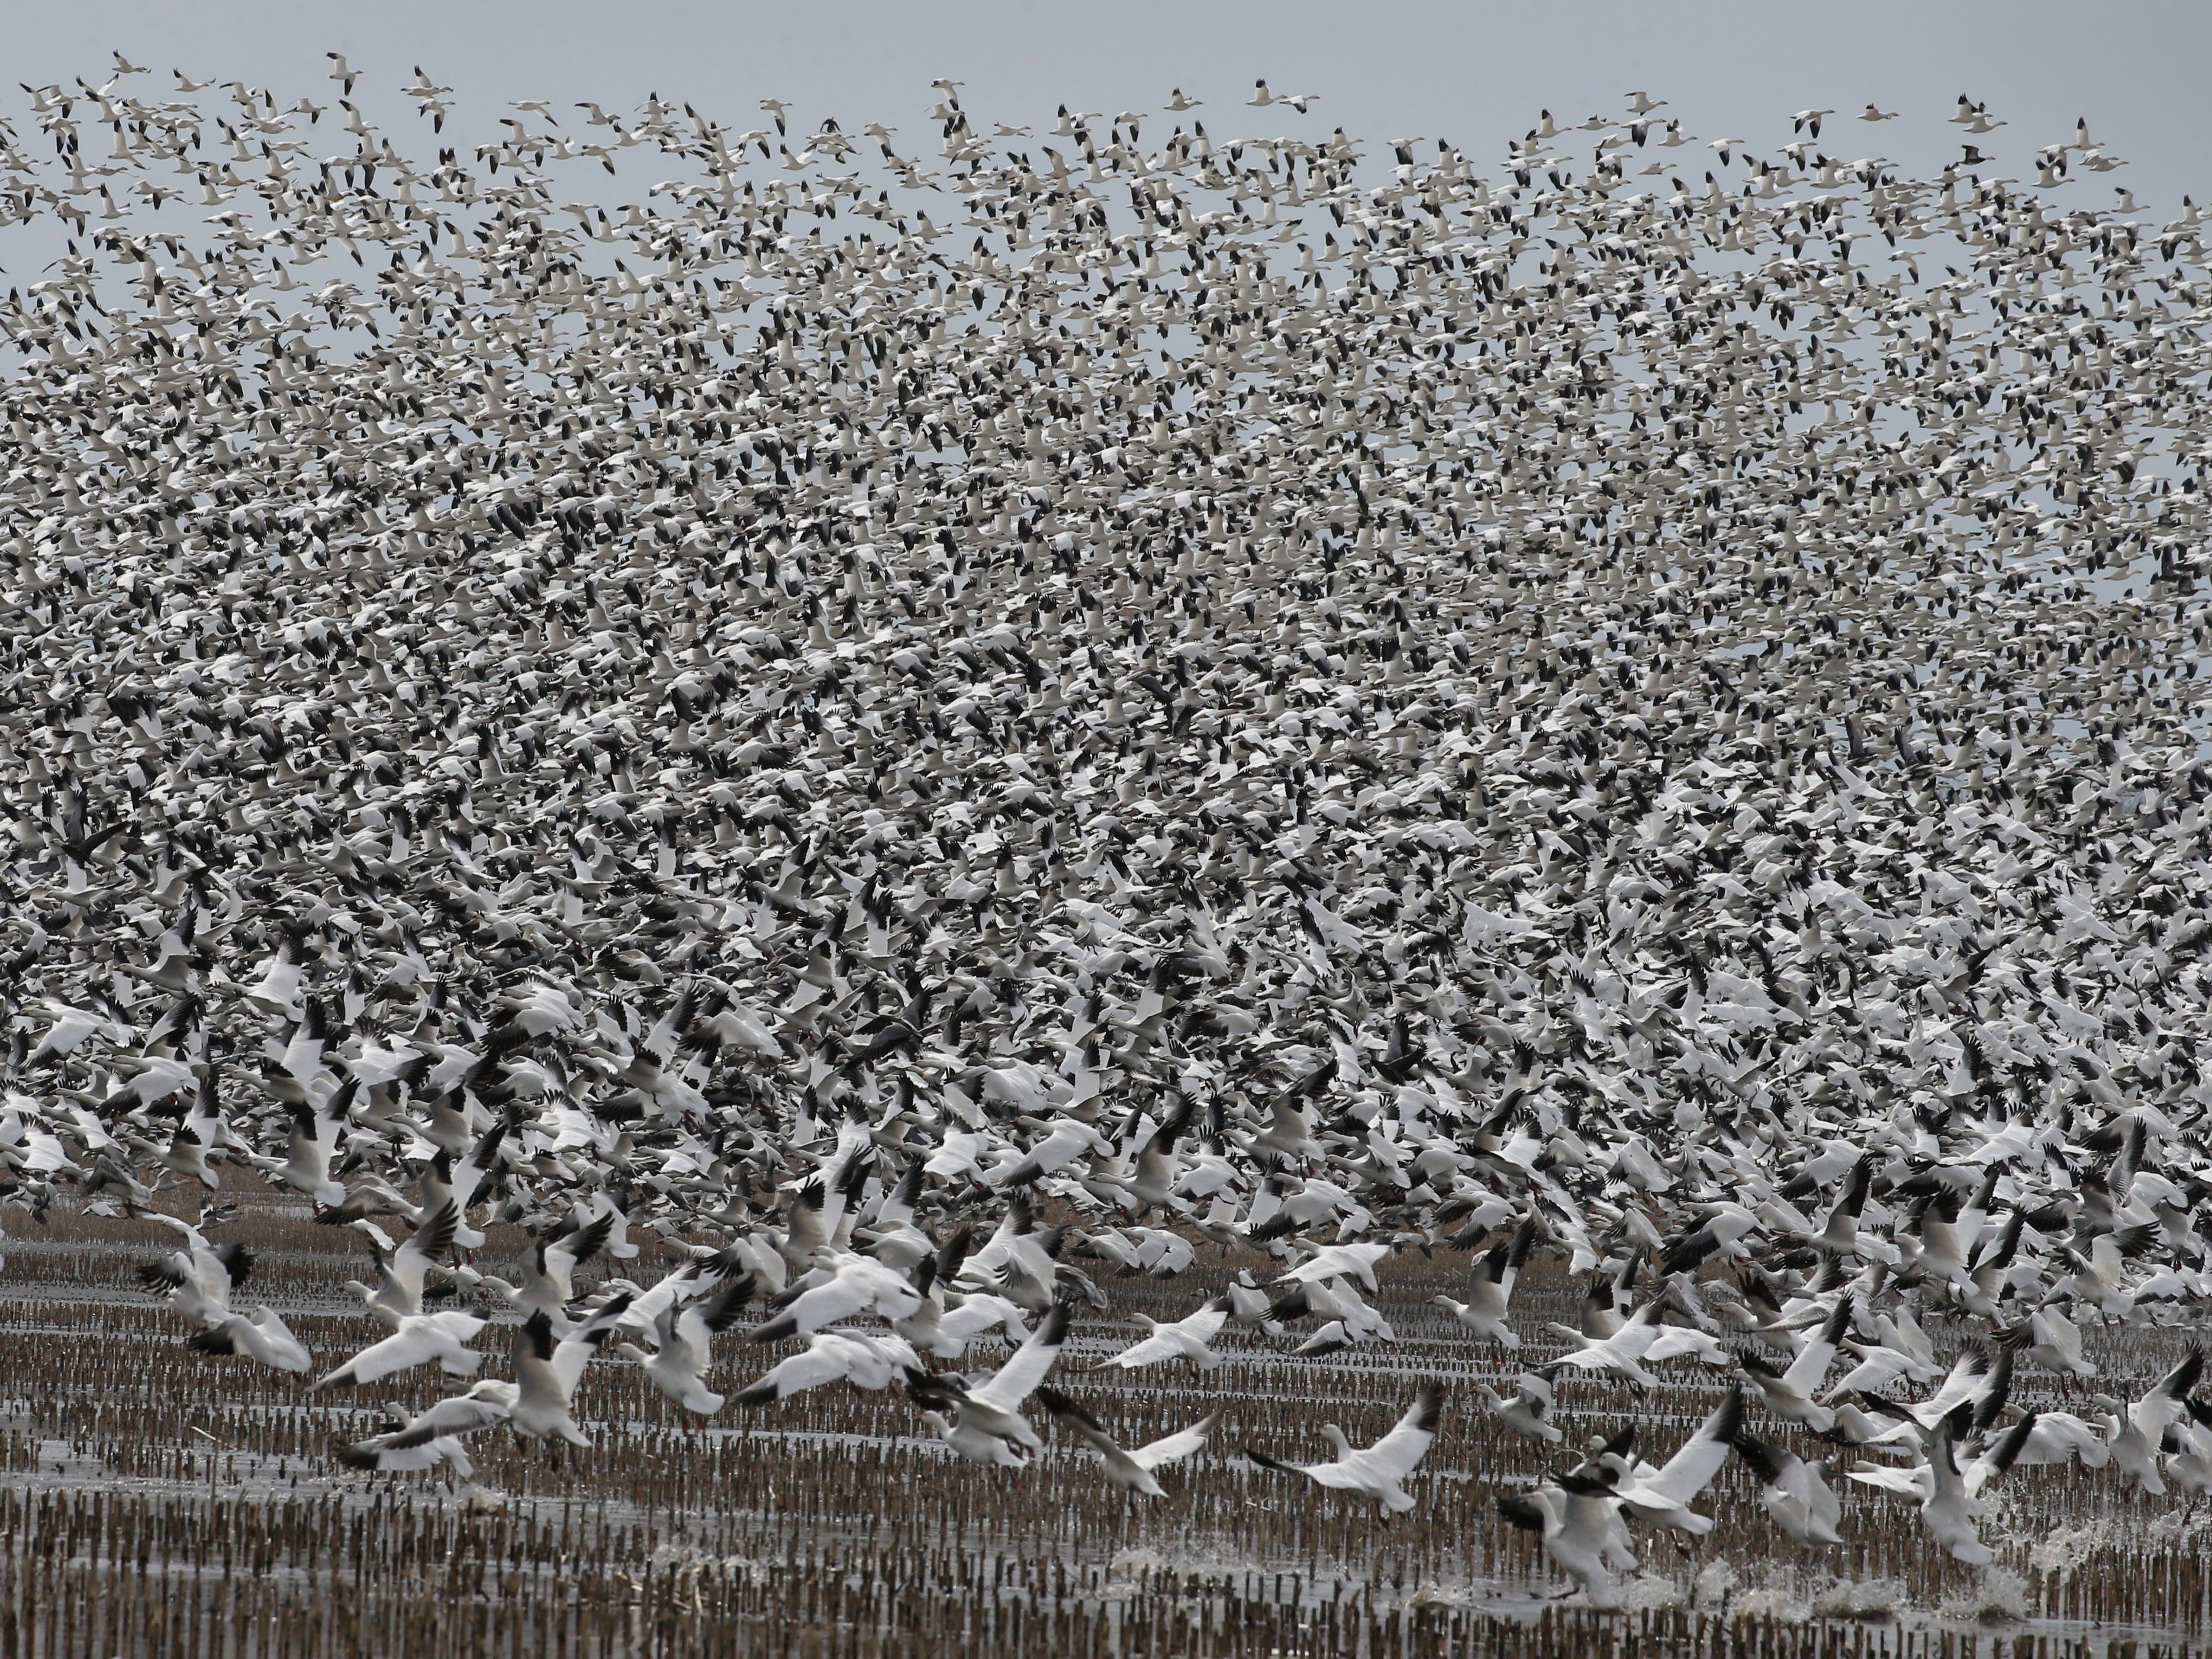 Snow Geese by the tens of thousands lift off then settle back down on a stretch of partially flooded farm land known as the 31 muck during the annual spring migration at the Montezuma Wetlands Complex along Route 31 outside of Savannah Thursday, March 21, 2019.  During a two week stretch, hundreds of thousands of the geese will migrate from their winter homes in the Chesapeake and Delaware bays, stopping in Montezuma for rest and food, before continuing on to their summer nesting home in the Hudson Bay region in the Canadian arctic.